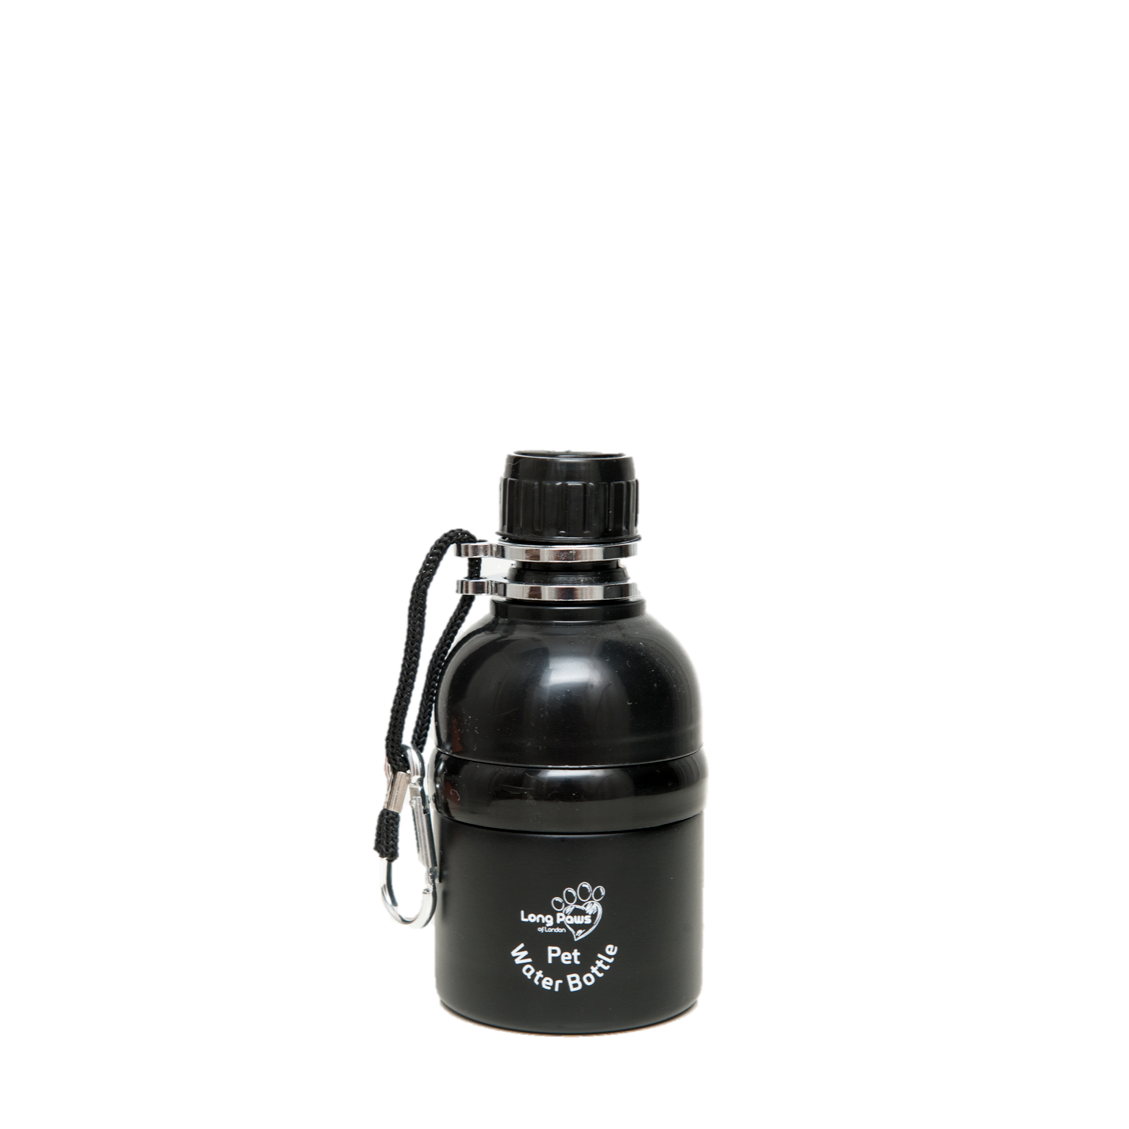 Pet Water Bottle - Black. - Fernie's Choice Classic Country Wear for Dogs